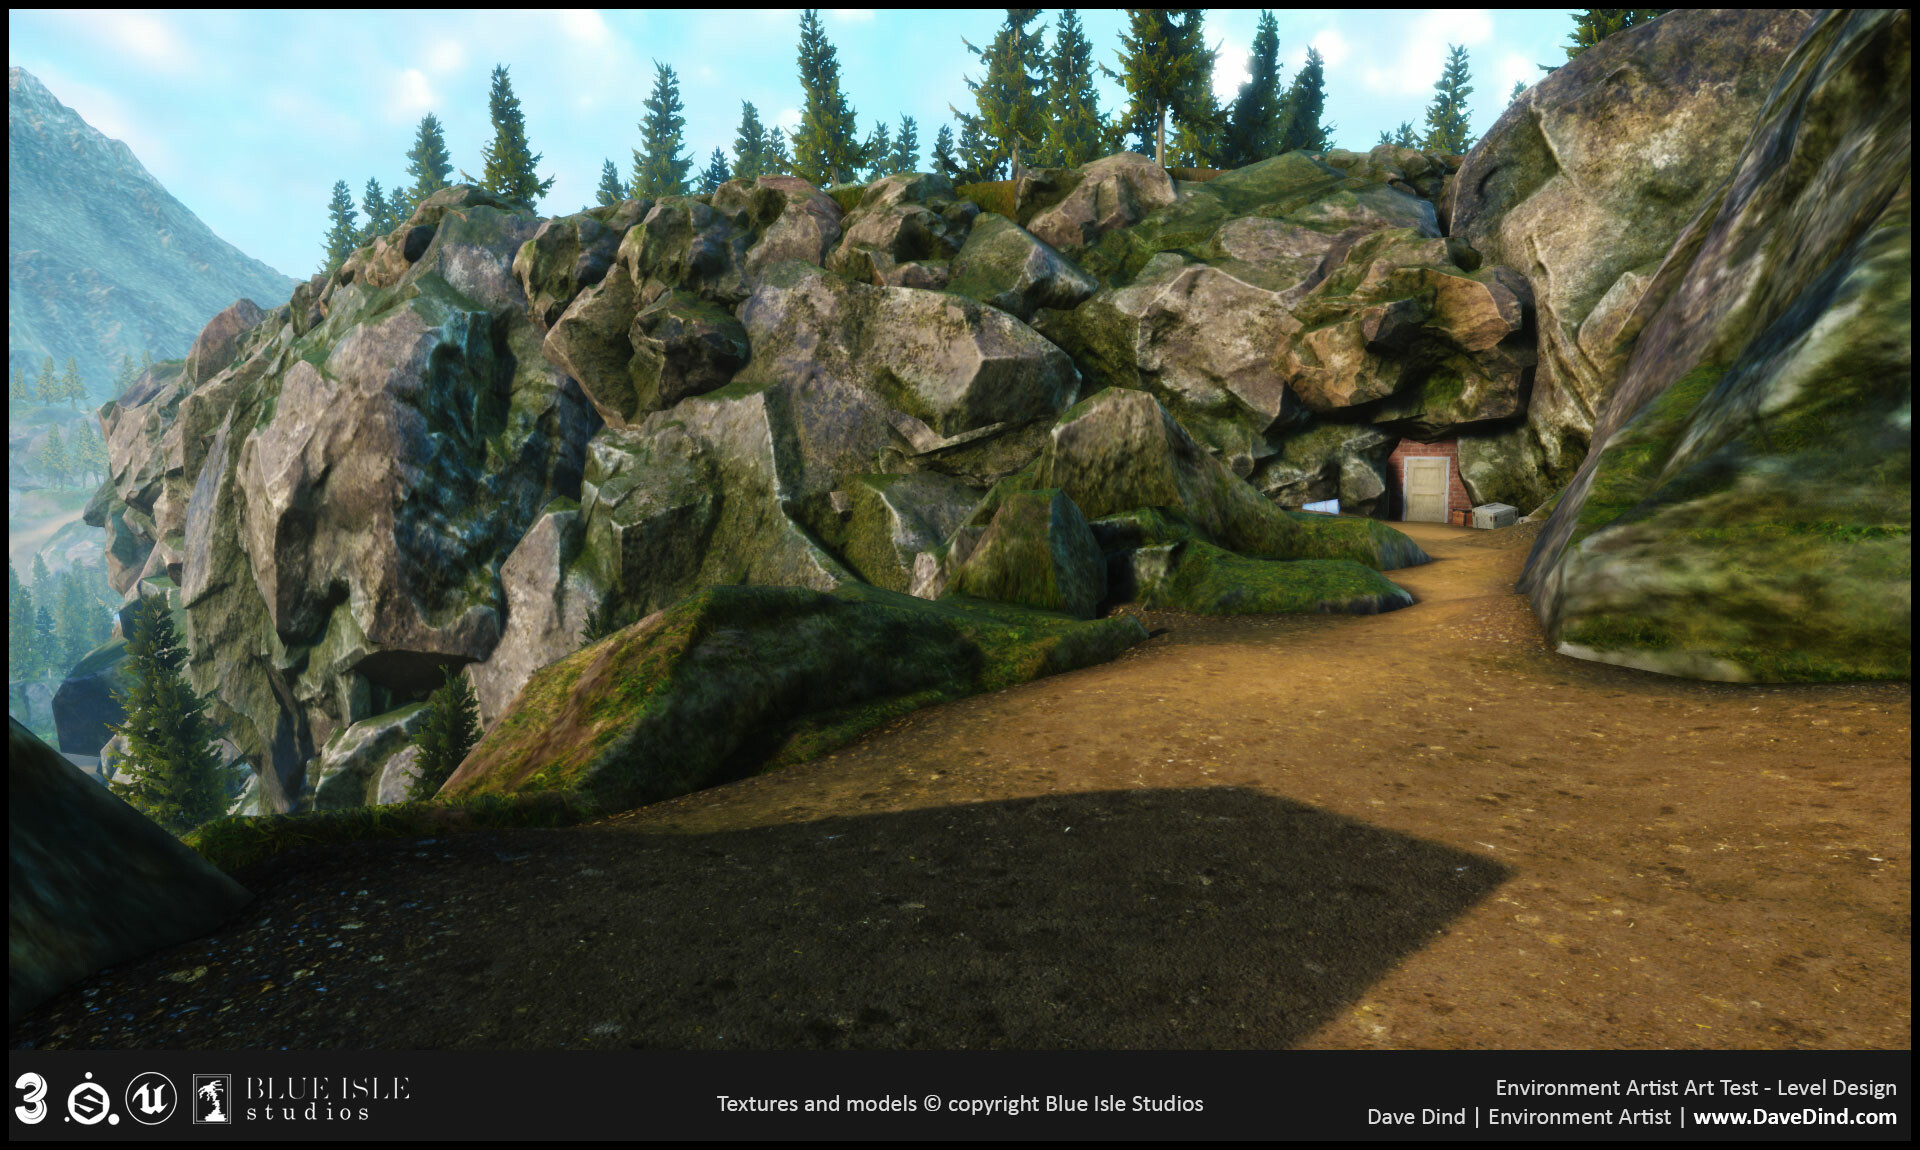 The house asset seen in the other images was used to create a hidden entrance to a possible underground facility